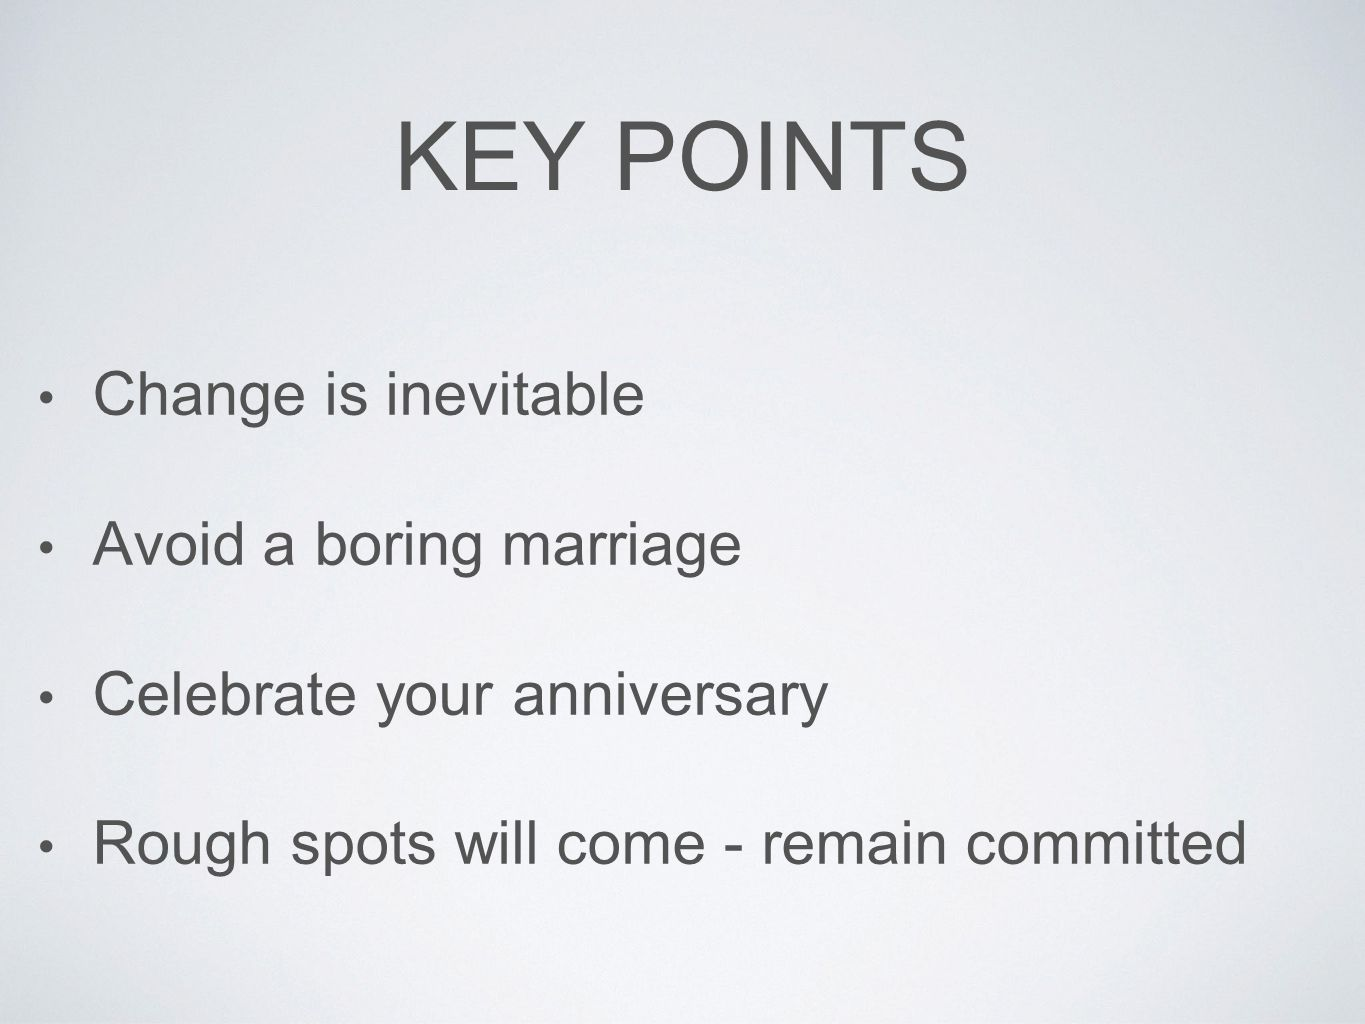 KEY POINTS Change is inevitable Avoid a boring marriage Celebrate your anniversary Rough spots will come - remain committed